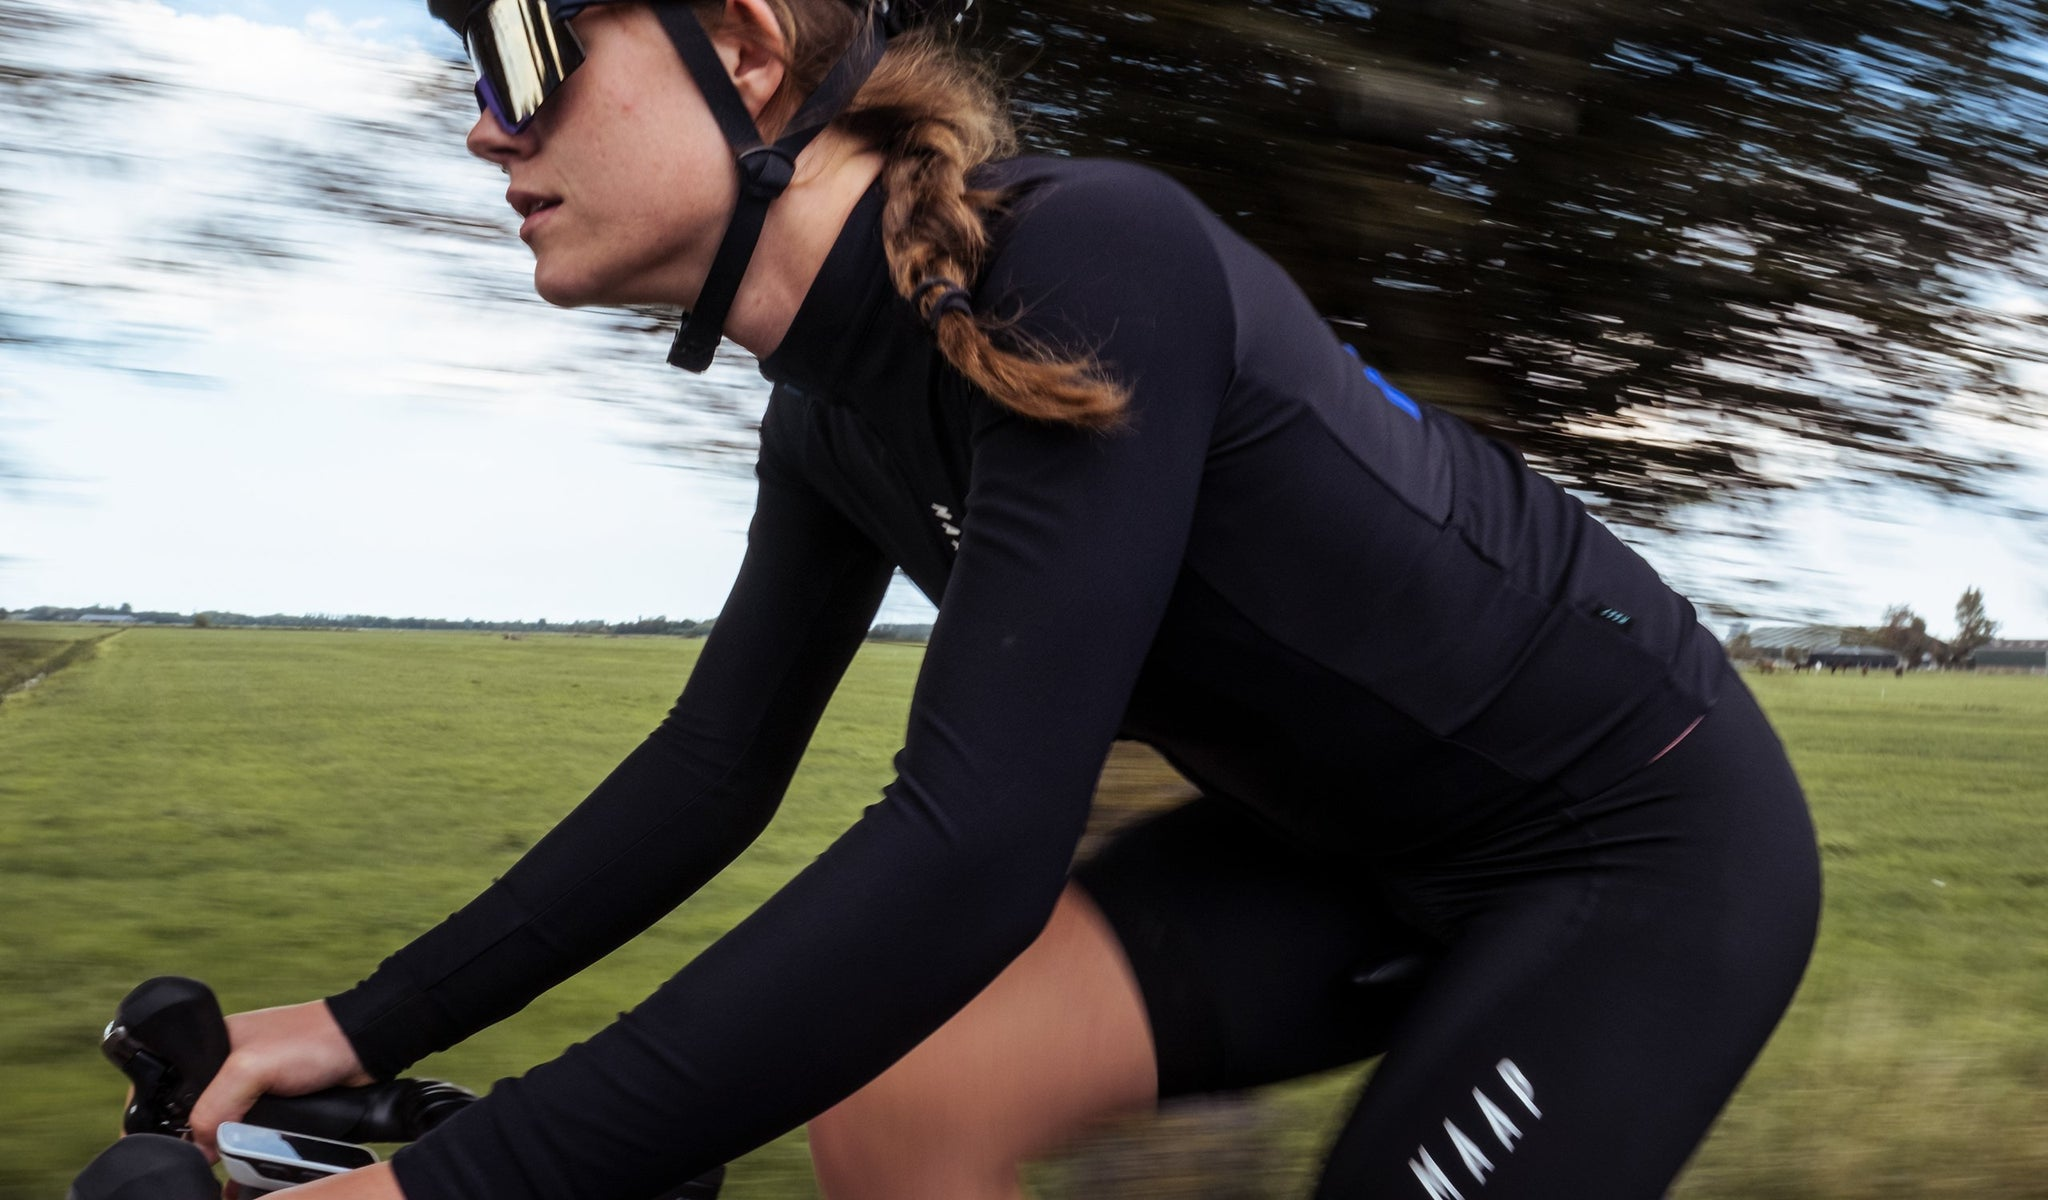 MAAP Women's Training Long Sleeve Cycling Jersey in Black for riding in mild conditions.